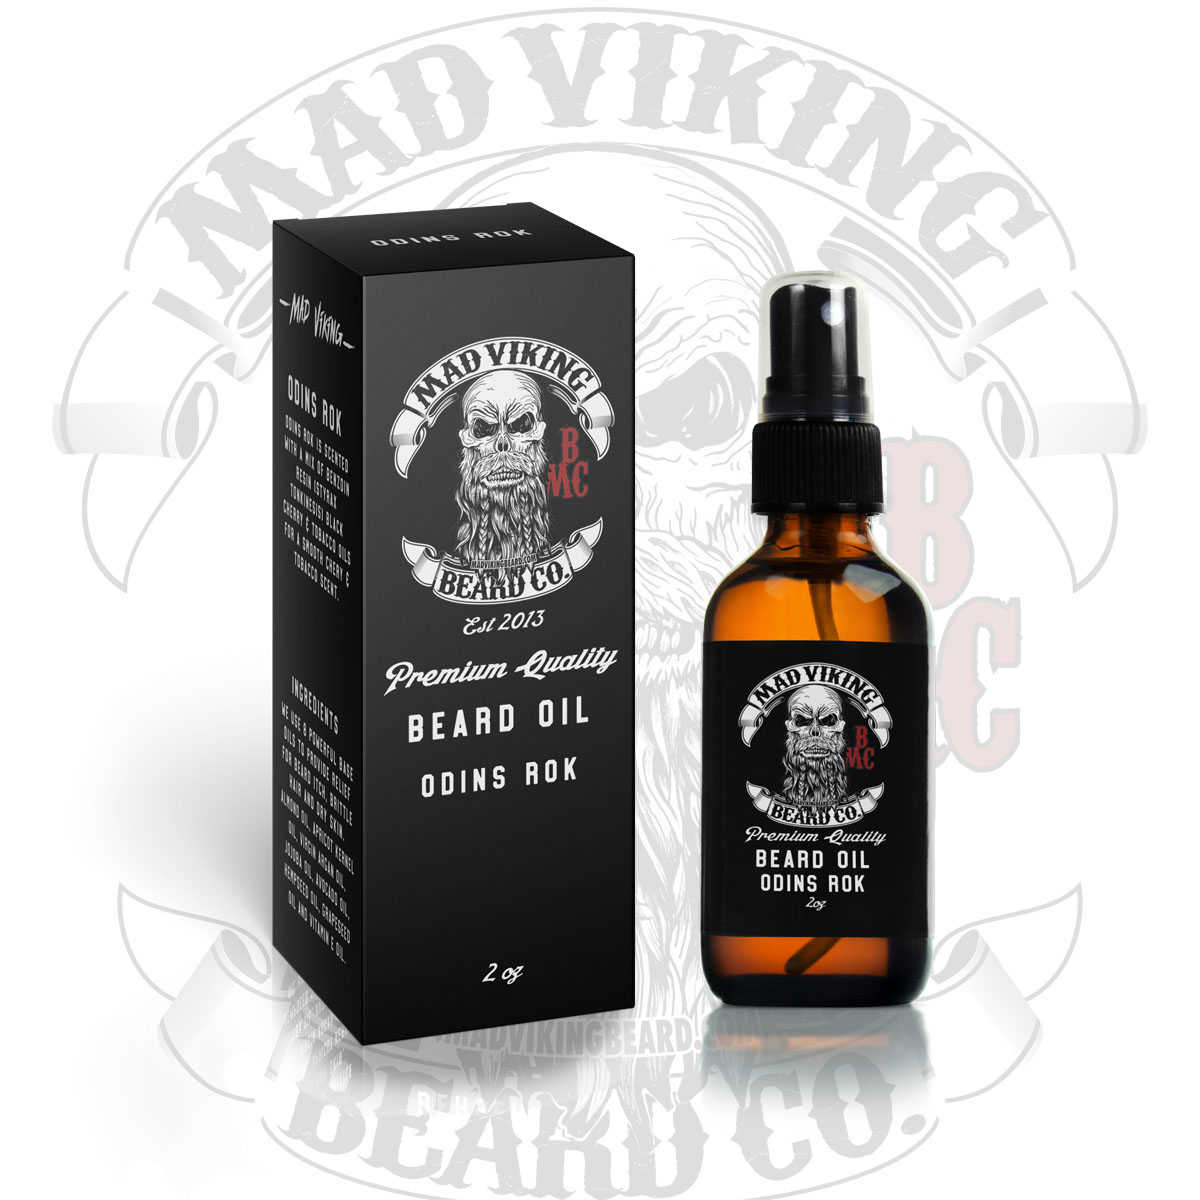 Odin's Rök Beard Oil 2oz